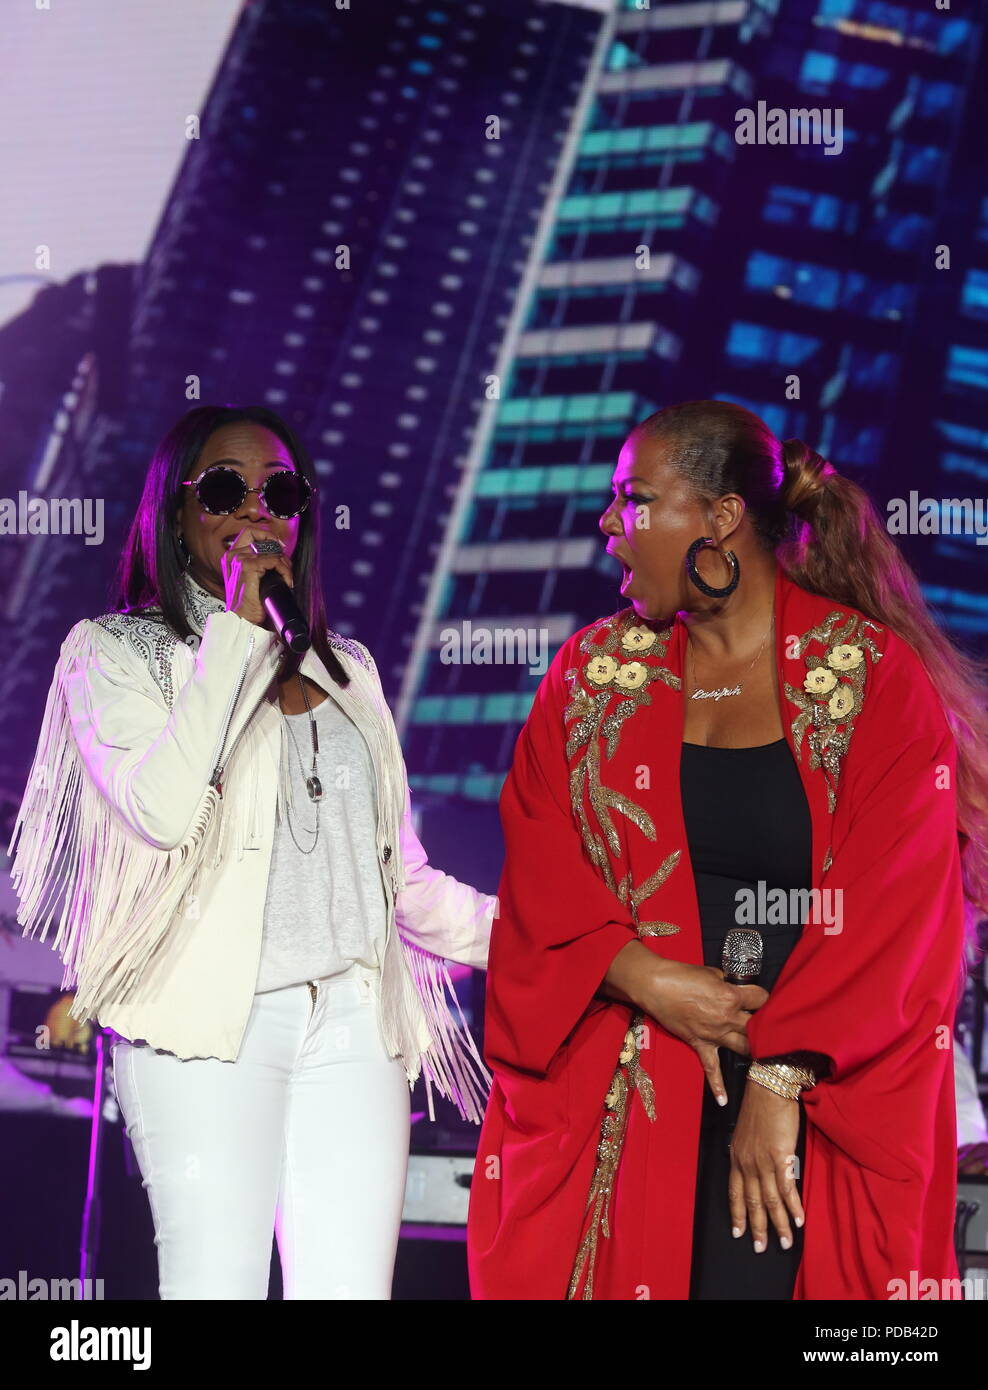 083a47c2dfc138 2018 Essence Festival New Orleans Held at the Mercedes-Benz Superdome  Featuring  Mc Lyte